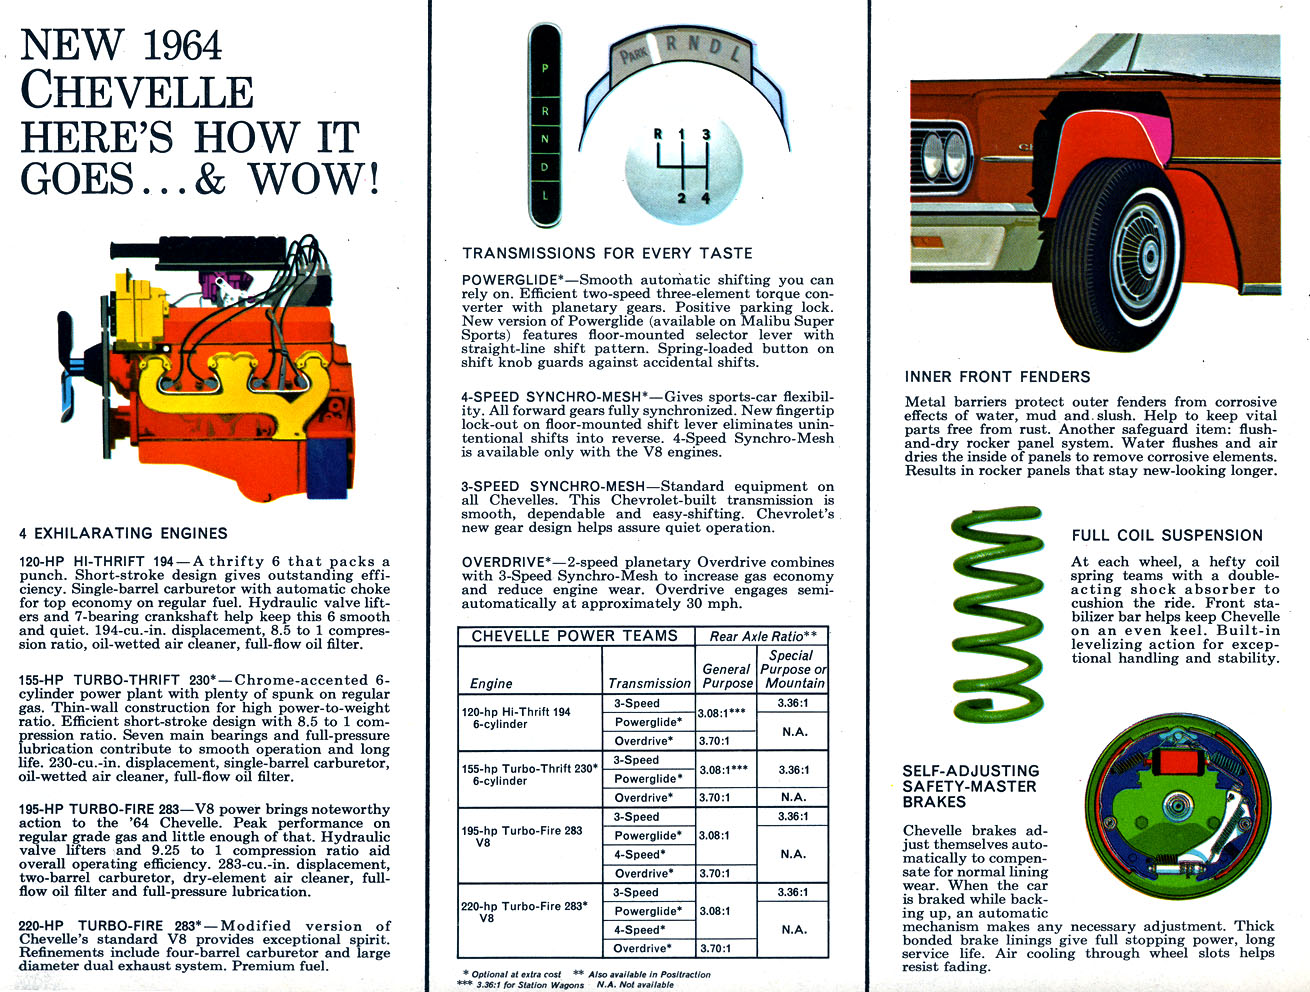 1964 Chevelle OEM Brochure - Page 8